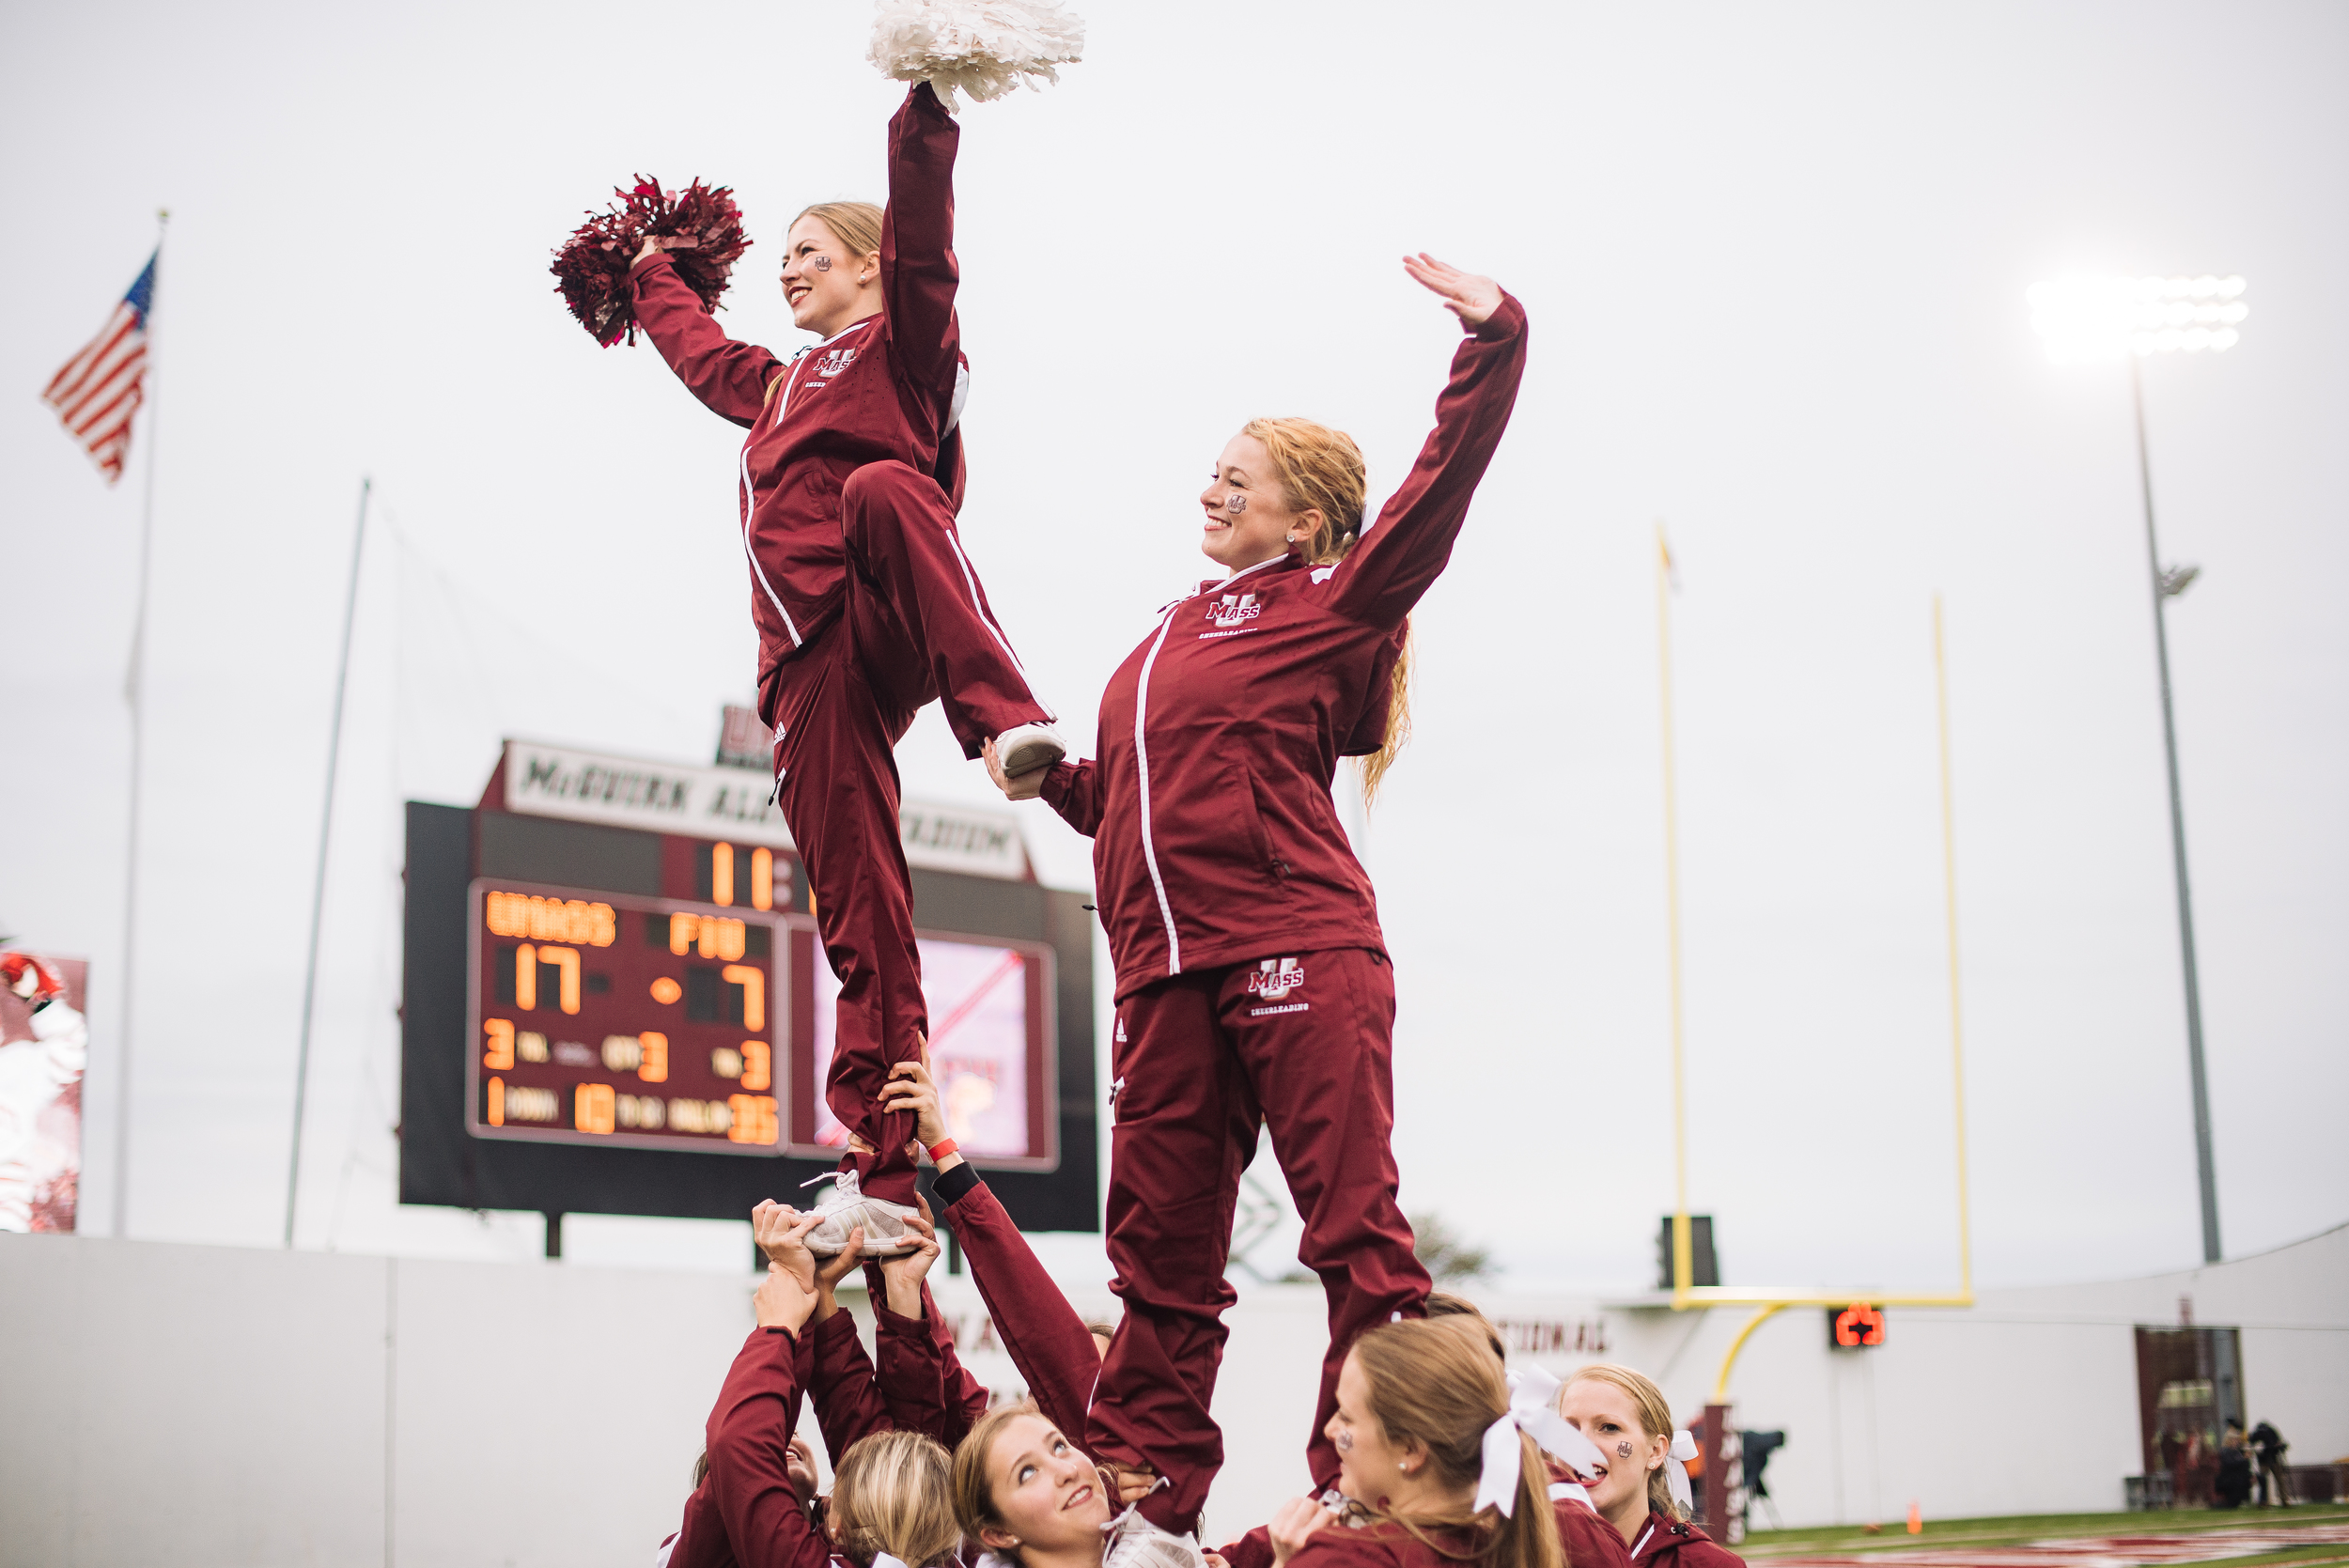 UMass Cheerleaders at a football game. Photo by Judith Gibson-Okunieff